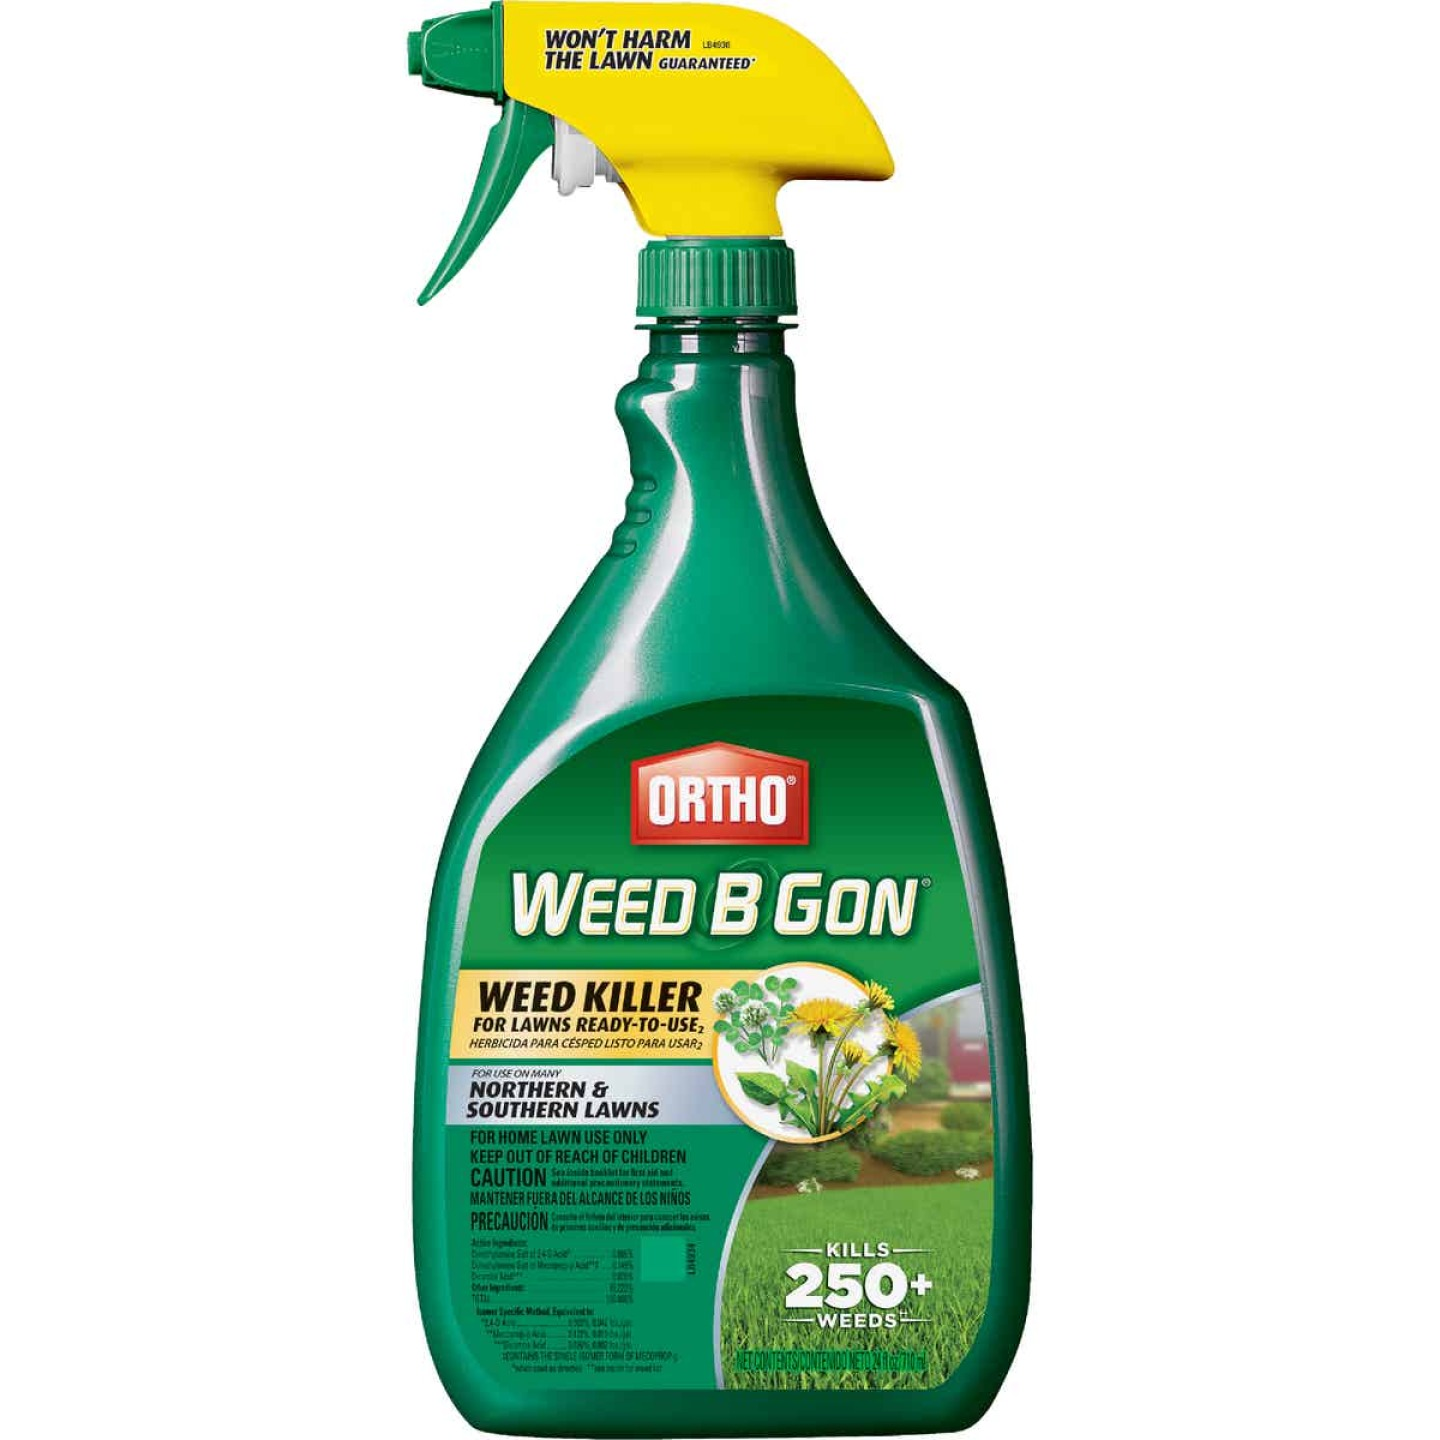 Ortho Weed-B-Gon 24 Oz. Ready To Use Trigger Spray Weed Killer For Lawns Image 1